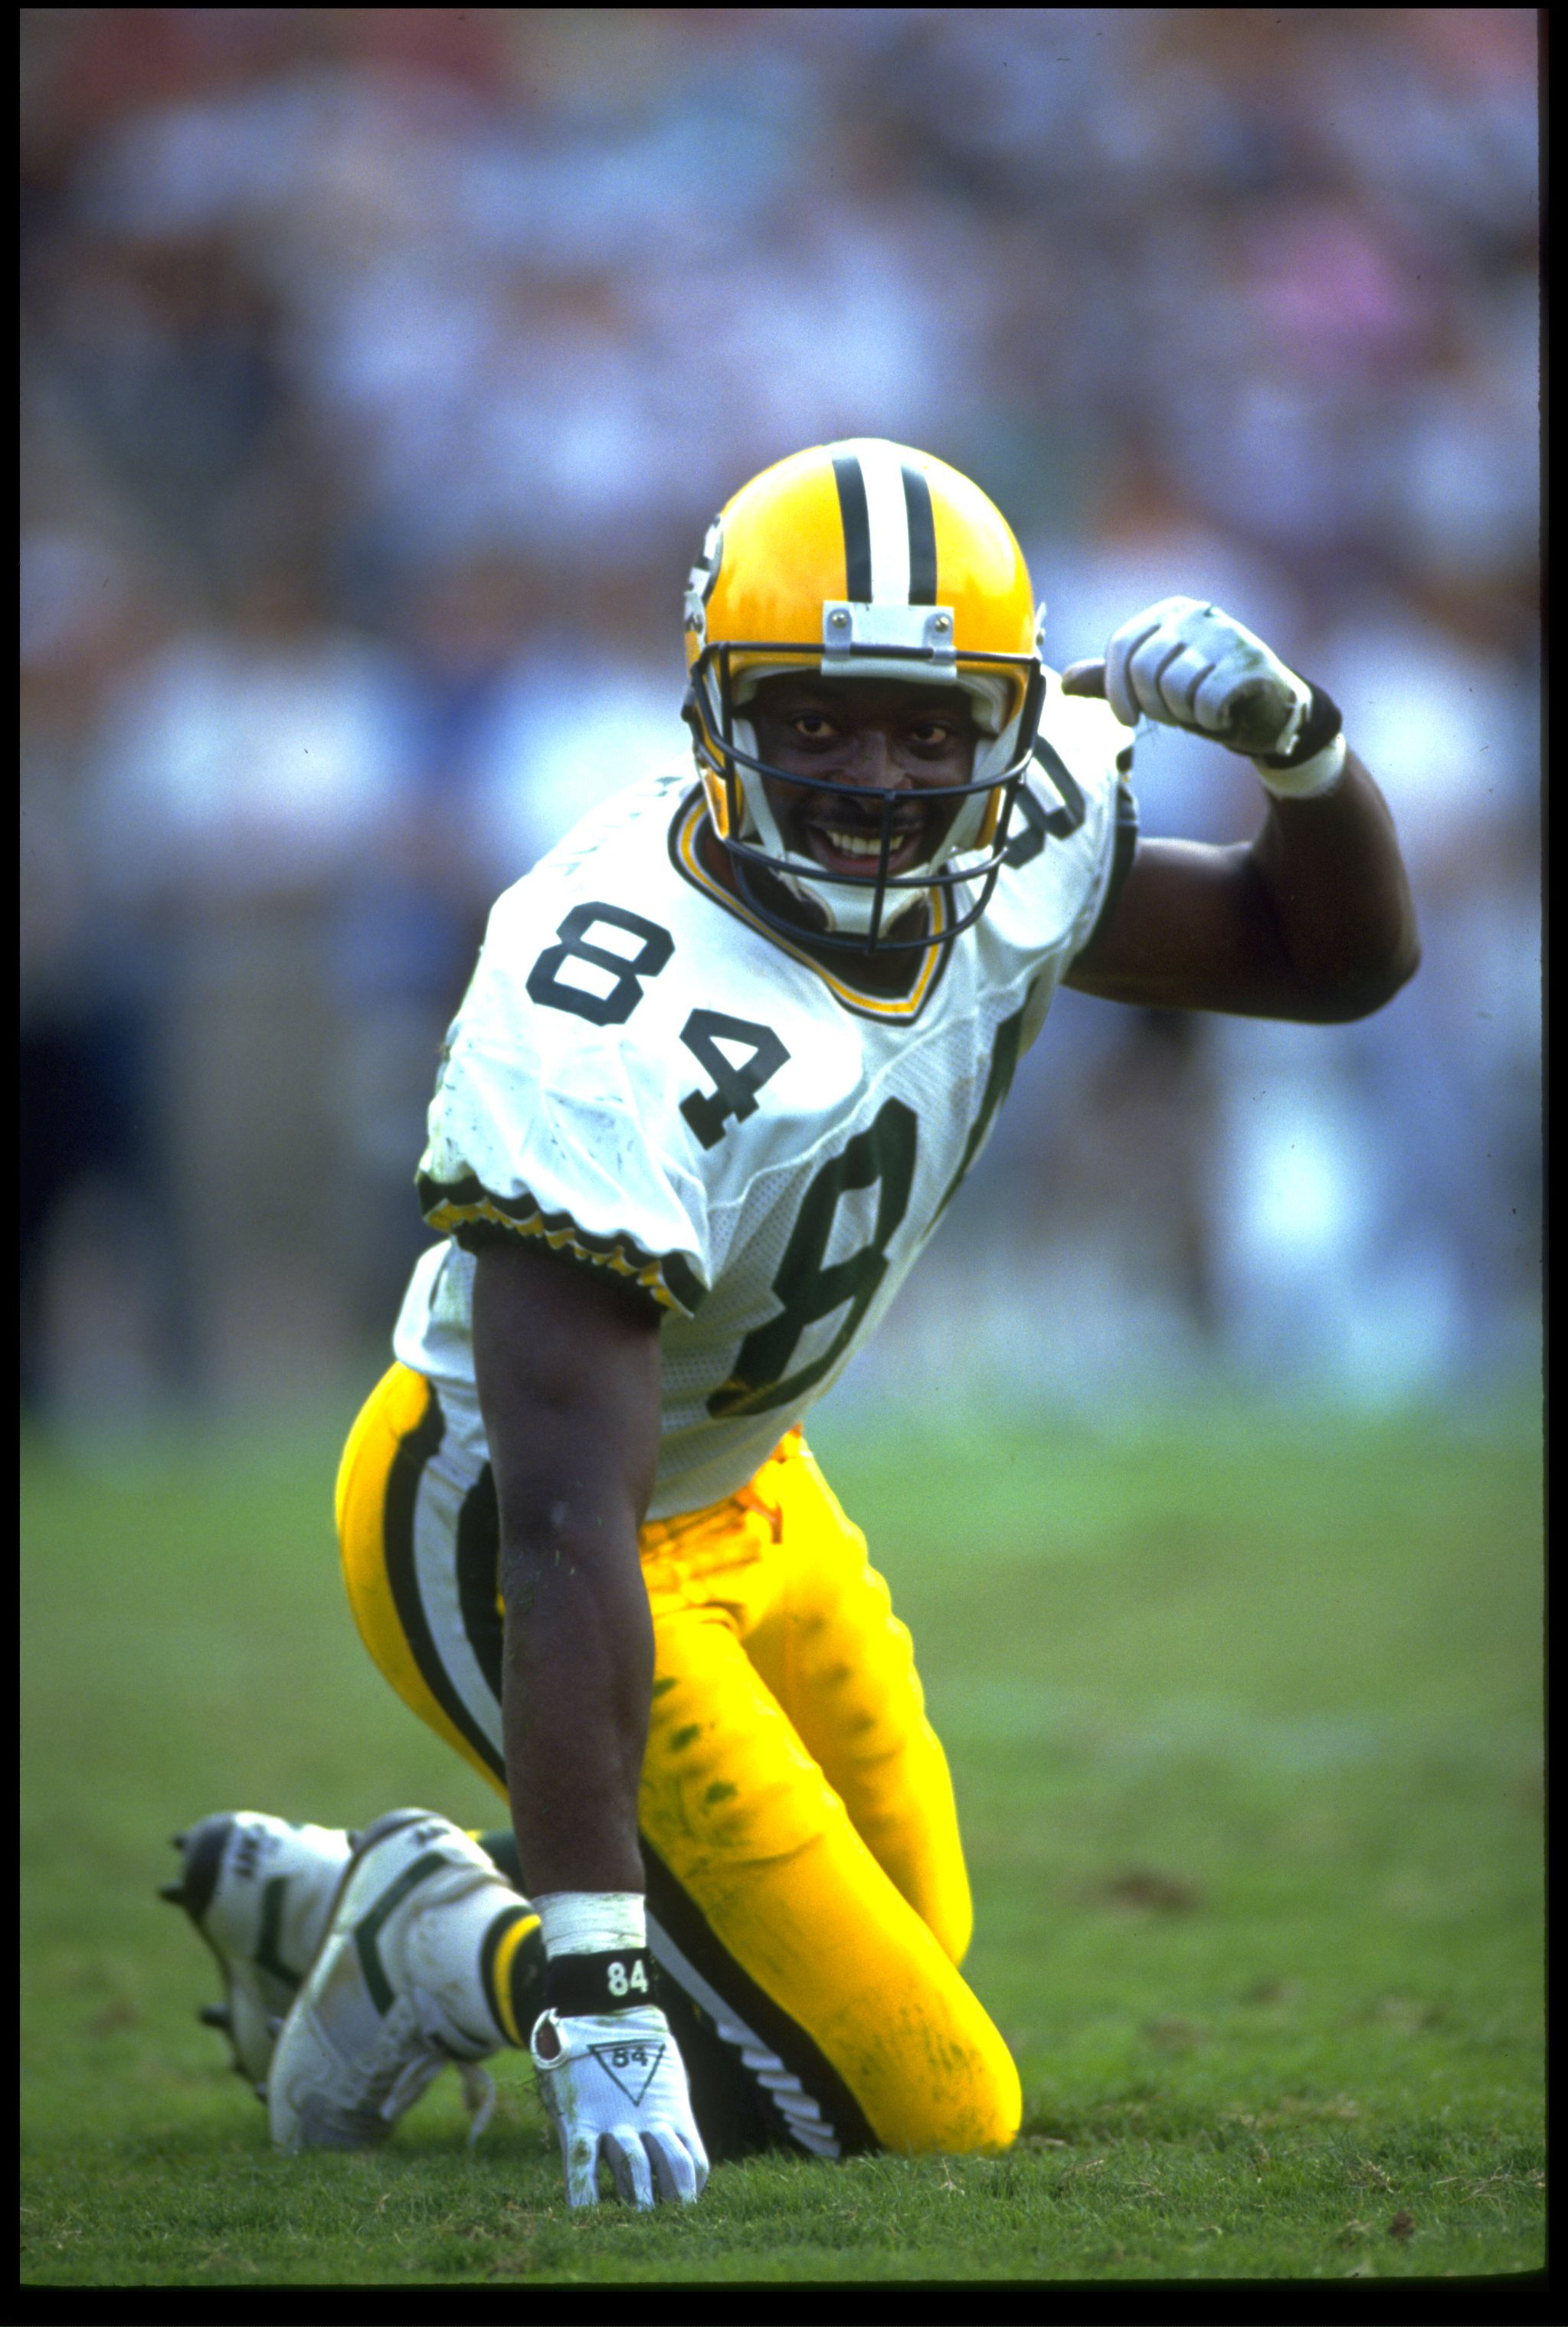 11 NOV 1990:  GREEN PACKERS WIDE RECEIVER STERLING SHARPE LOOKS BACK TO THE LINE OF SCRIMMAGE DURING THE PACKERS 29-16 VICTORY OVER THE LOS ANGELES RAIDERS AT THE LOS ANGELES MEMORIAL COLISEUM IN LOS ANGELES, CALIFORNIA.